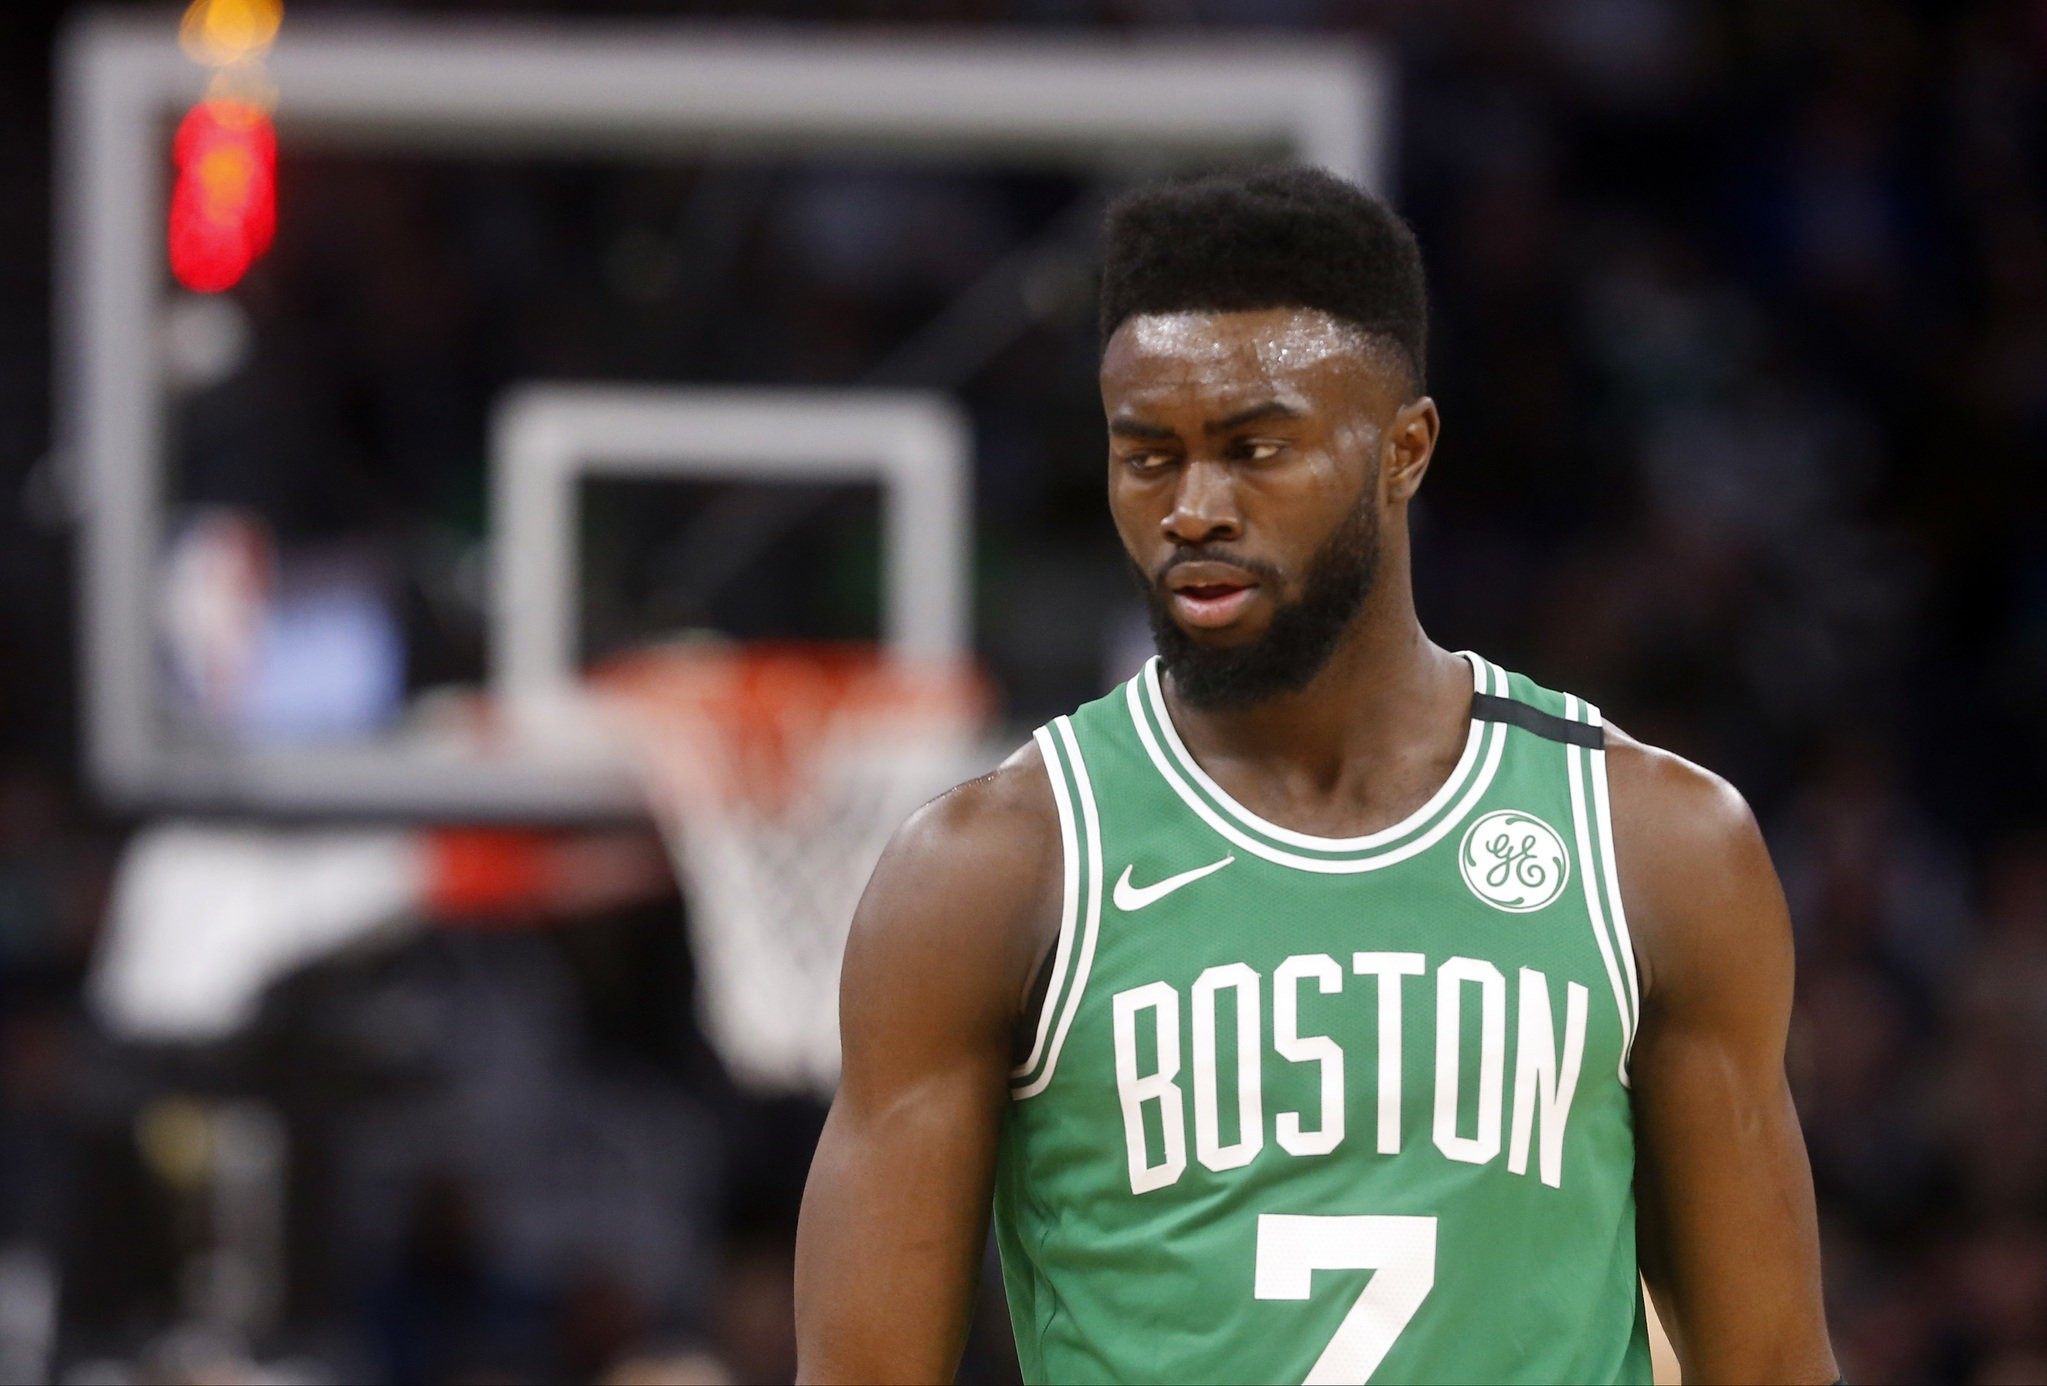 Jaylen Brown, Boston Celtics wing, bites on young camper's pump fake, gets scored on